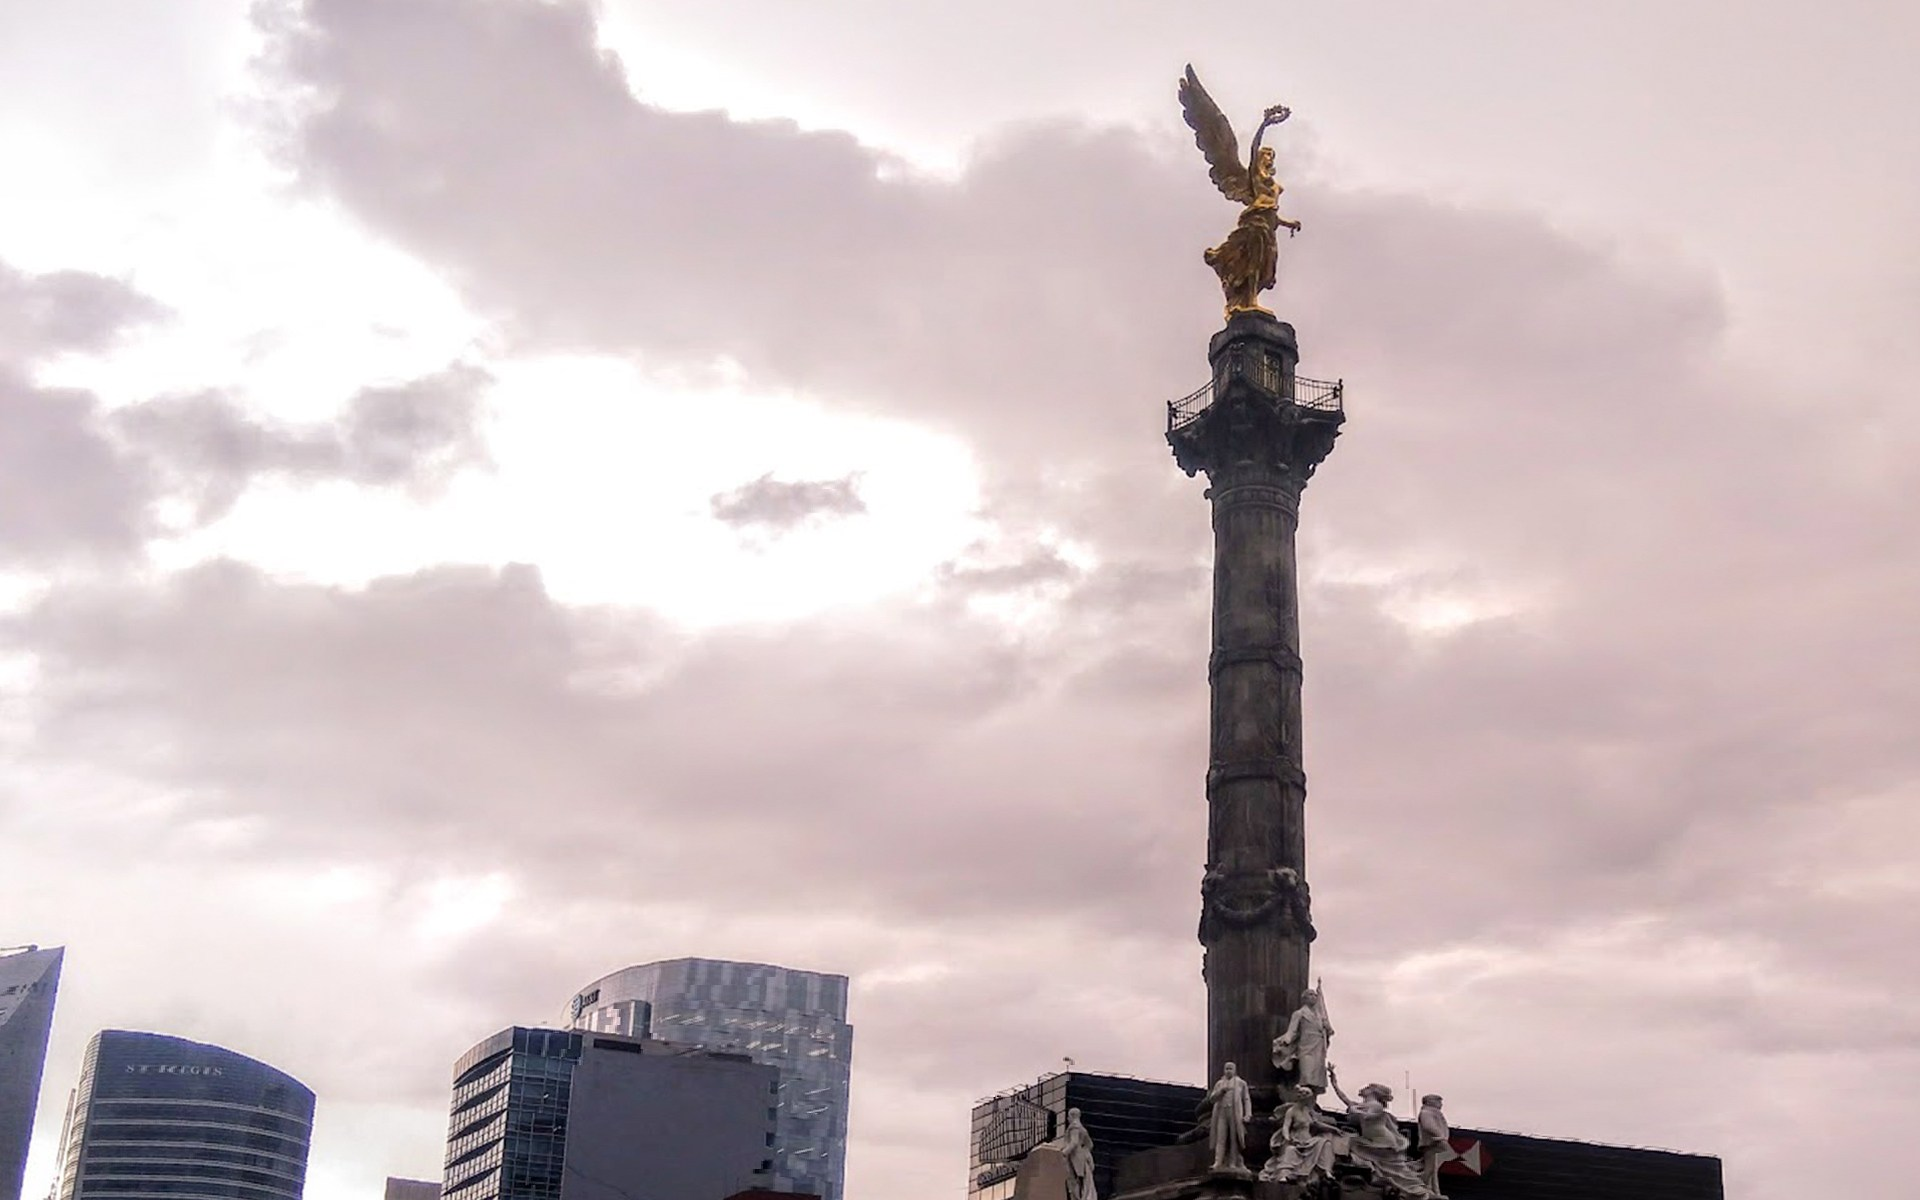 Ángel de la independencia, CDMX